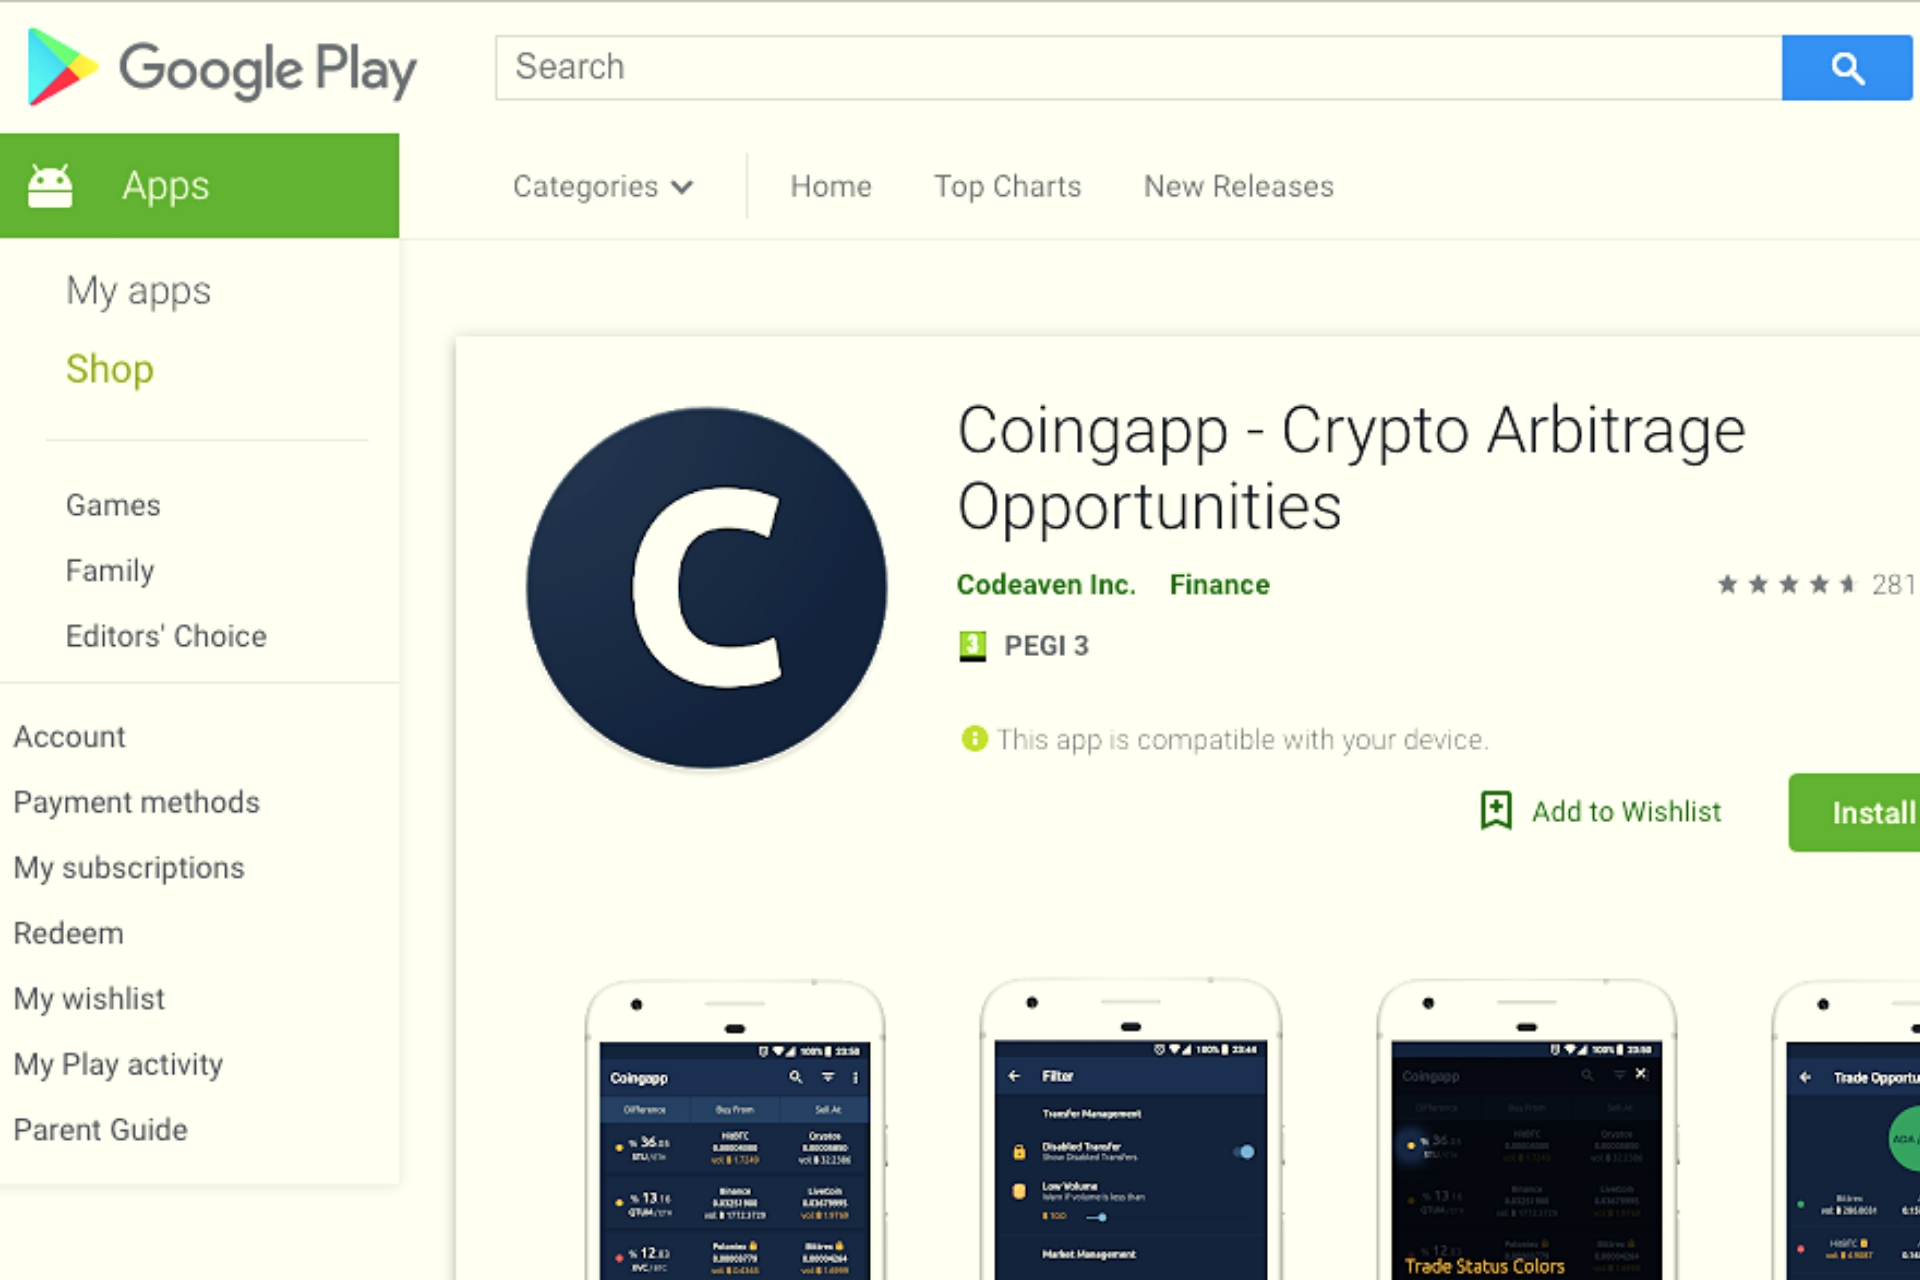 Coingapp Enable Users To Take Advantage Of Market